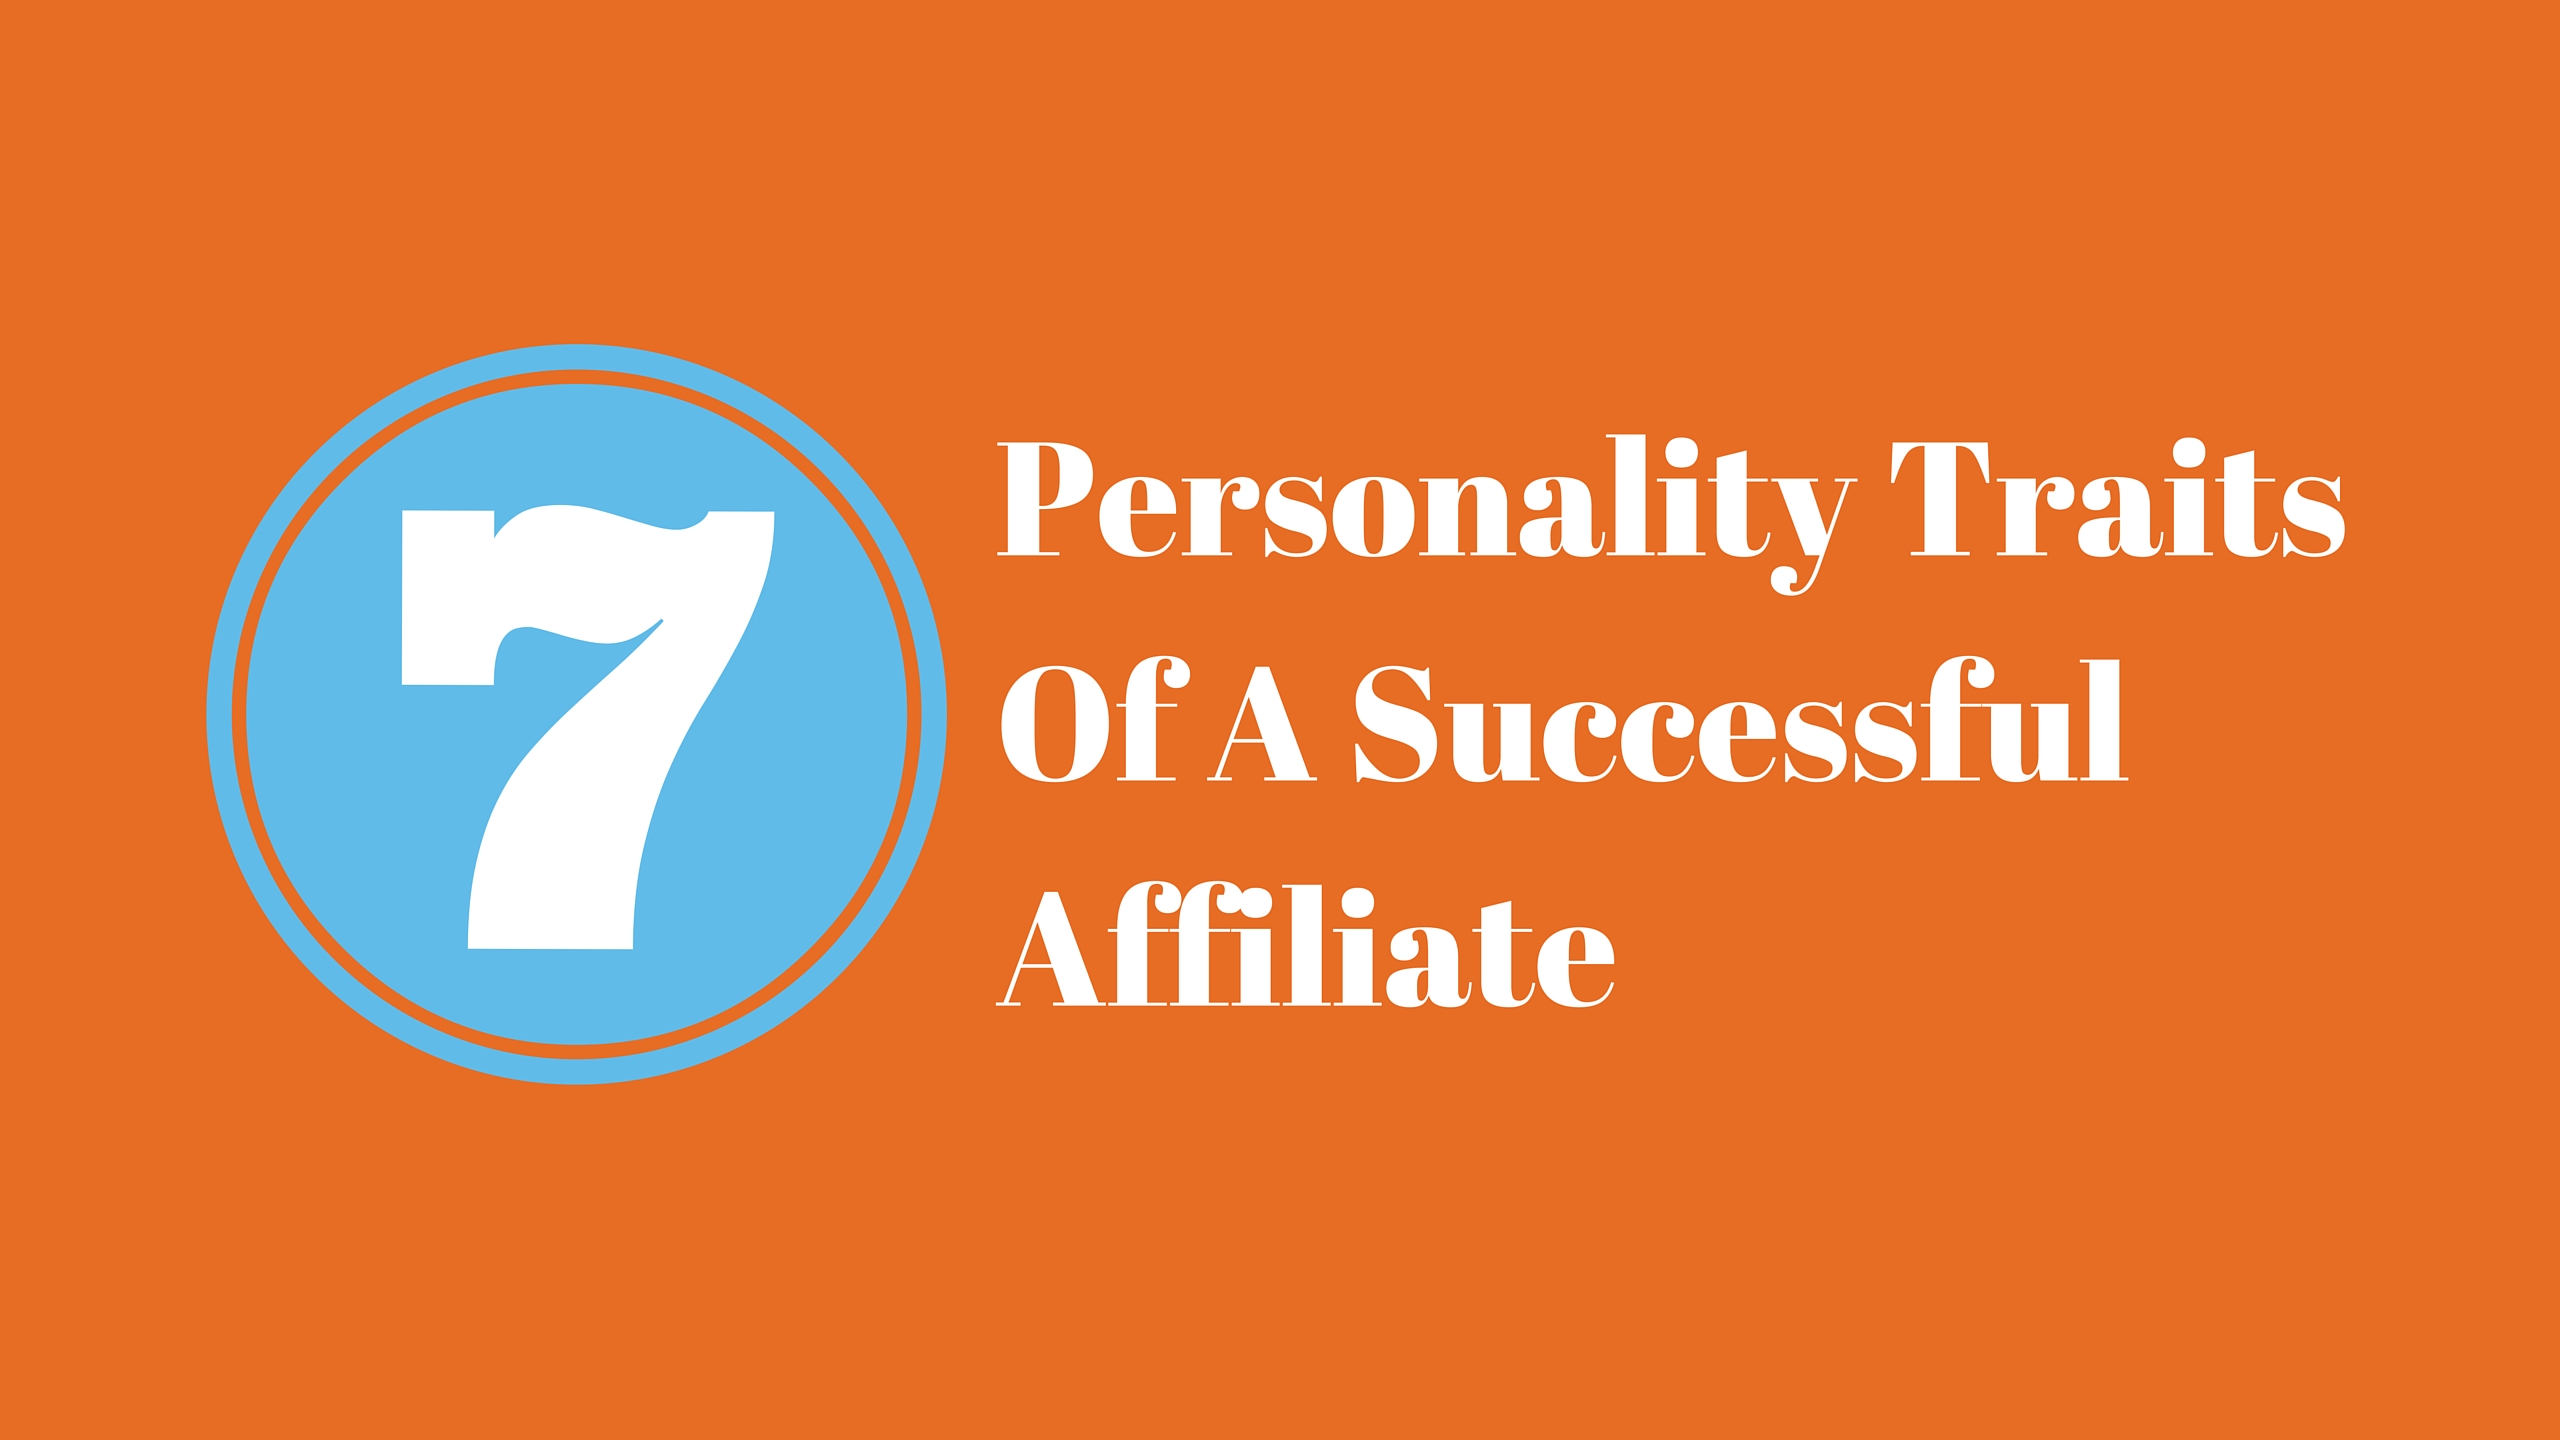 7 Personality Traits Of A Successful Affiliate